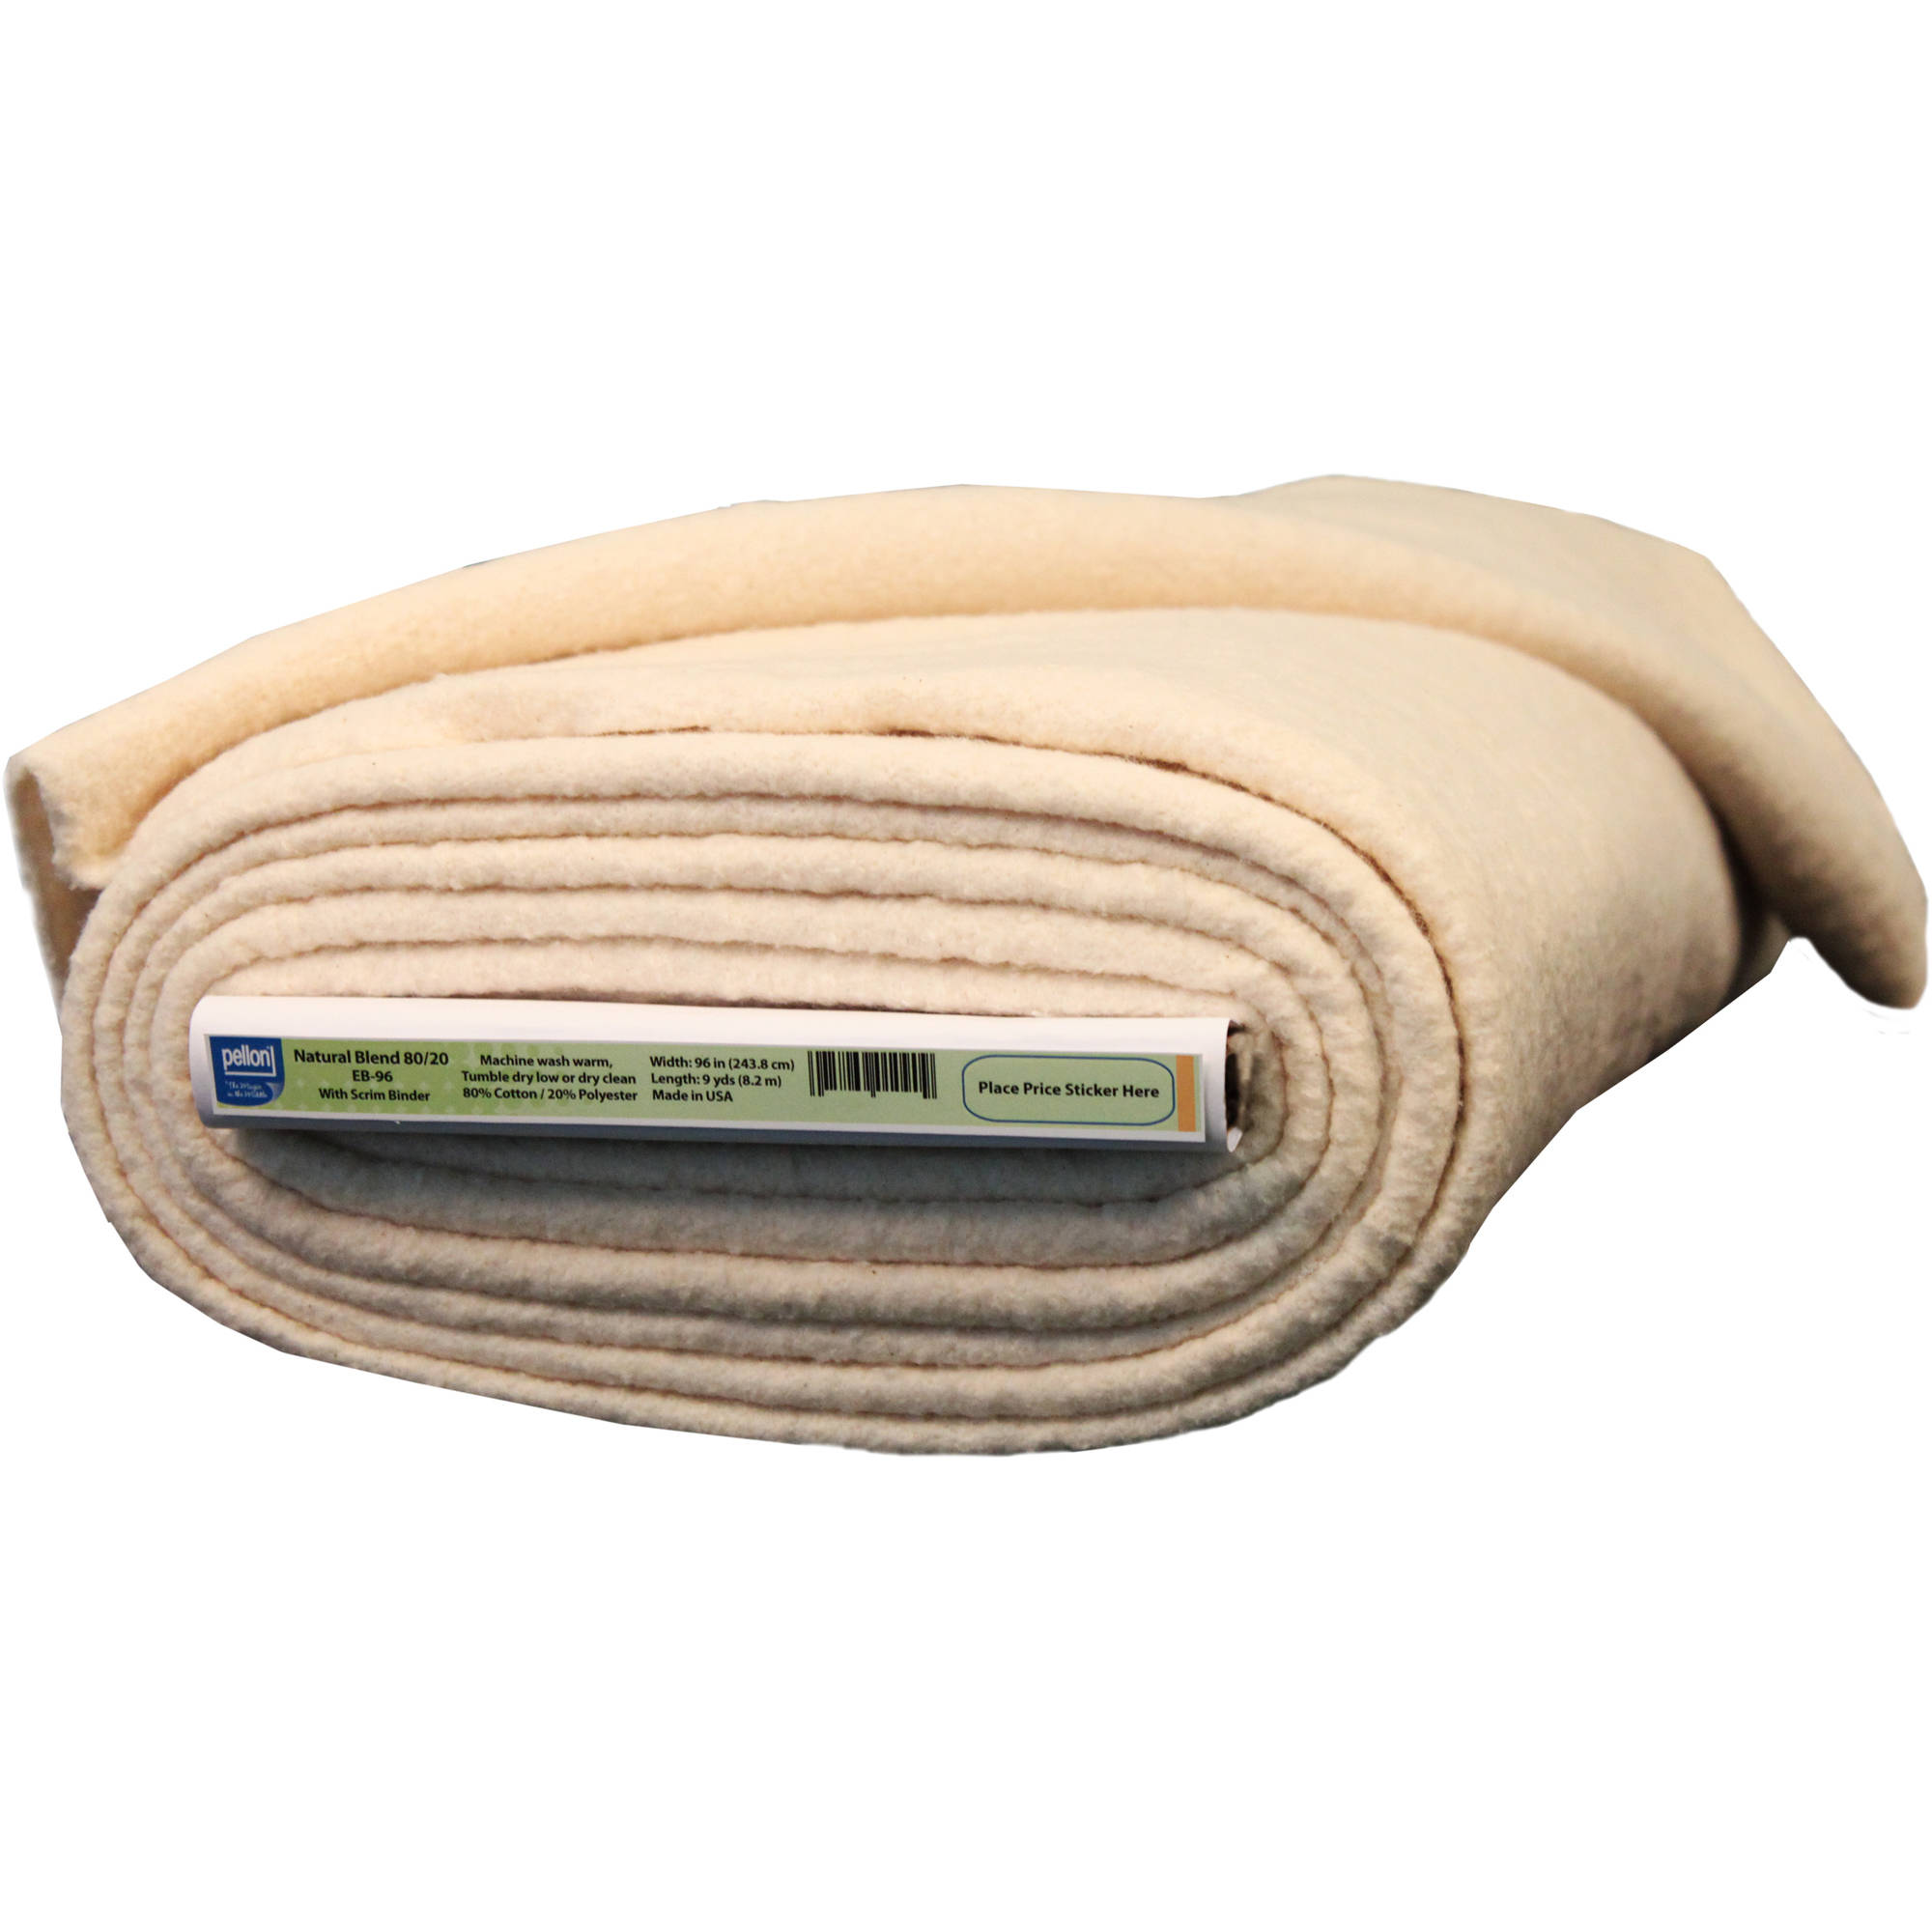 "Pellon Natural Blend 80/20 Batting With Stabilizing Scrim Binder, 96"" Wide, 9 Yard Bolt"